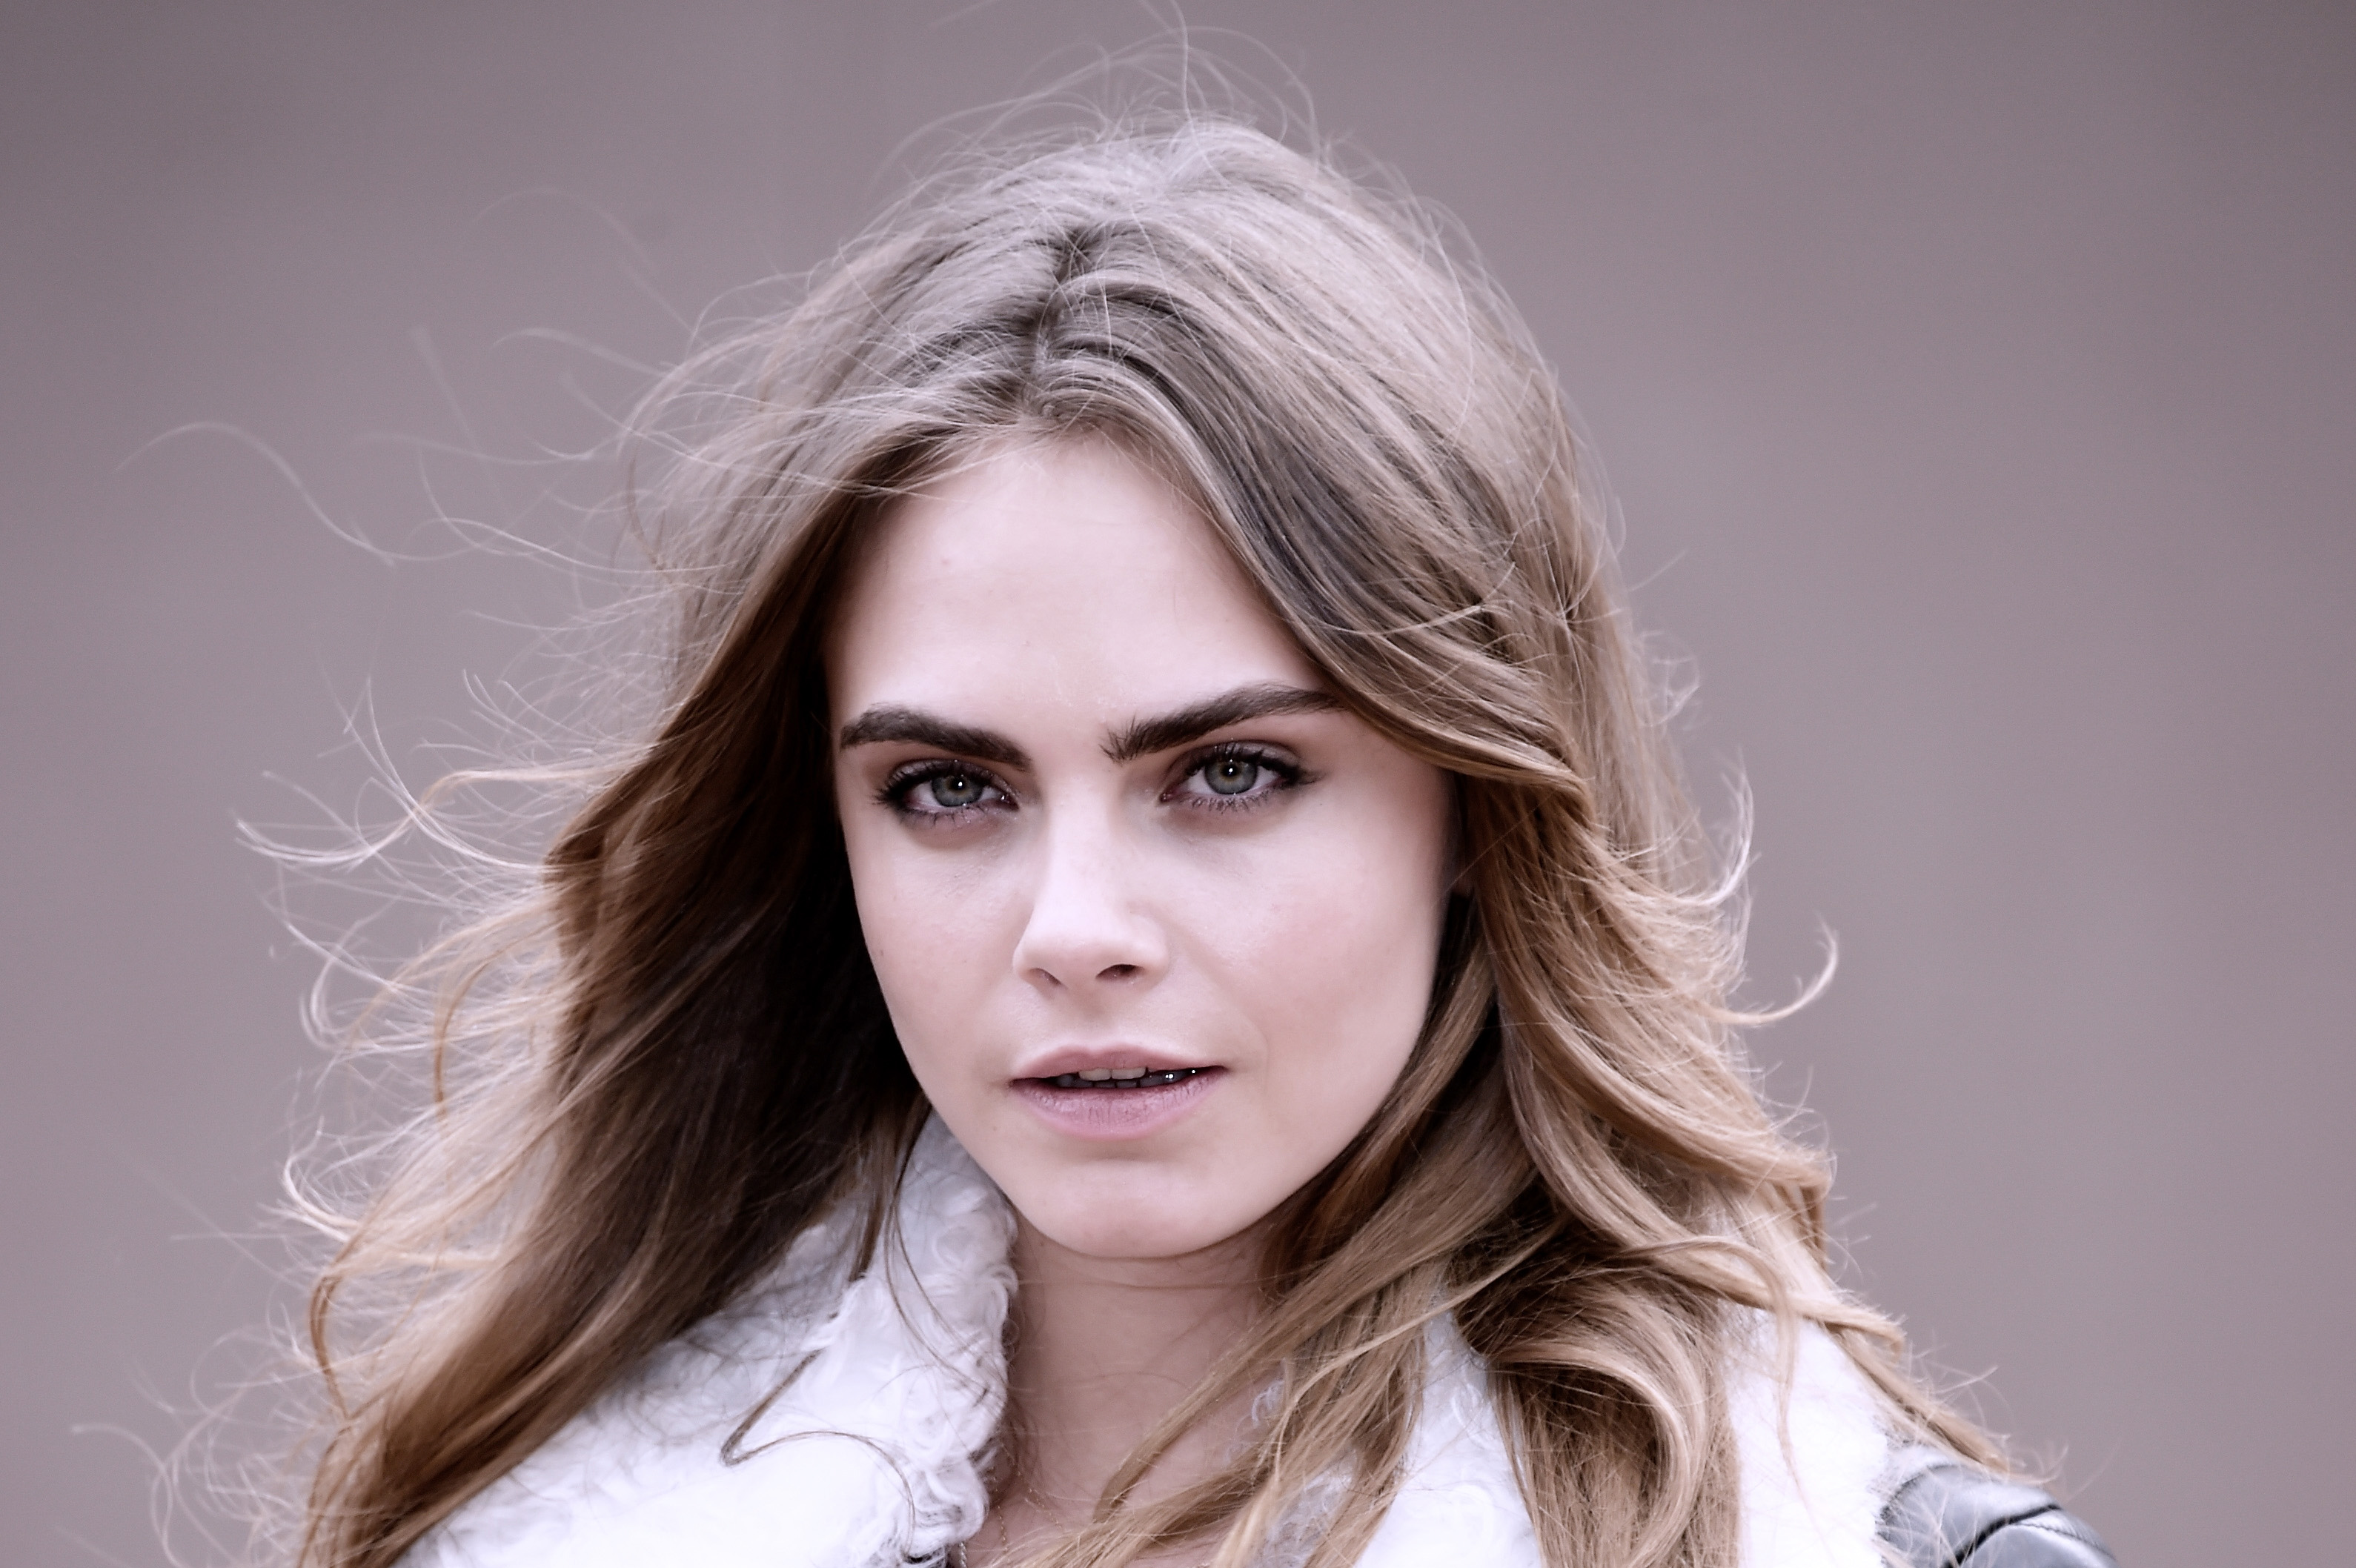 cara delevingne widescreen wallpaper 64677